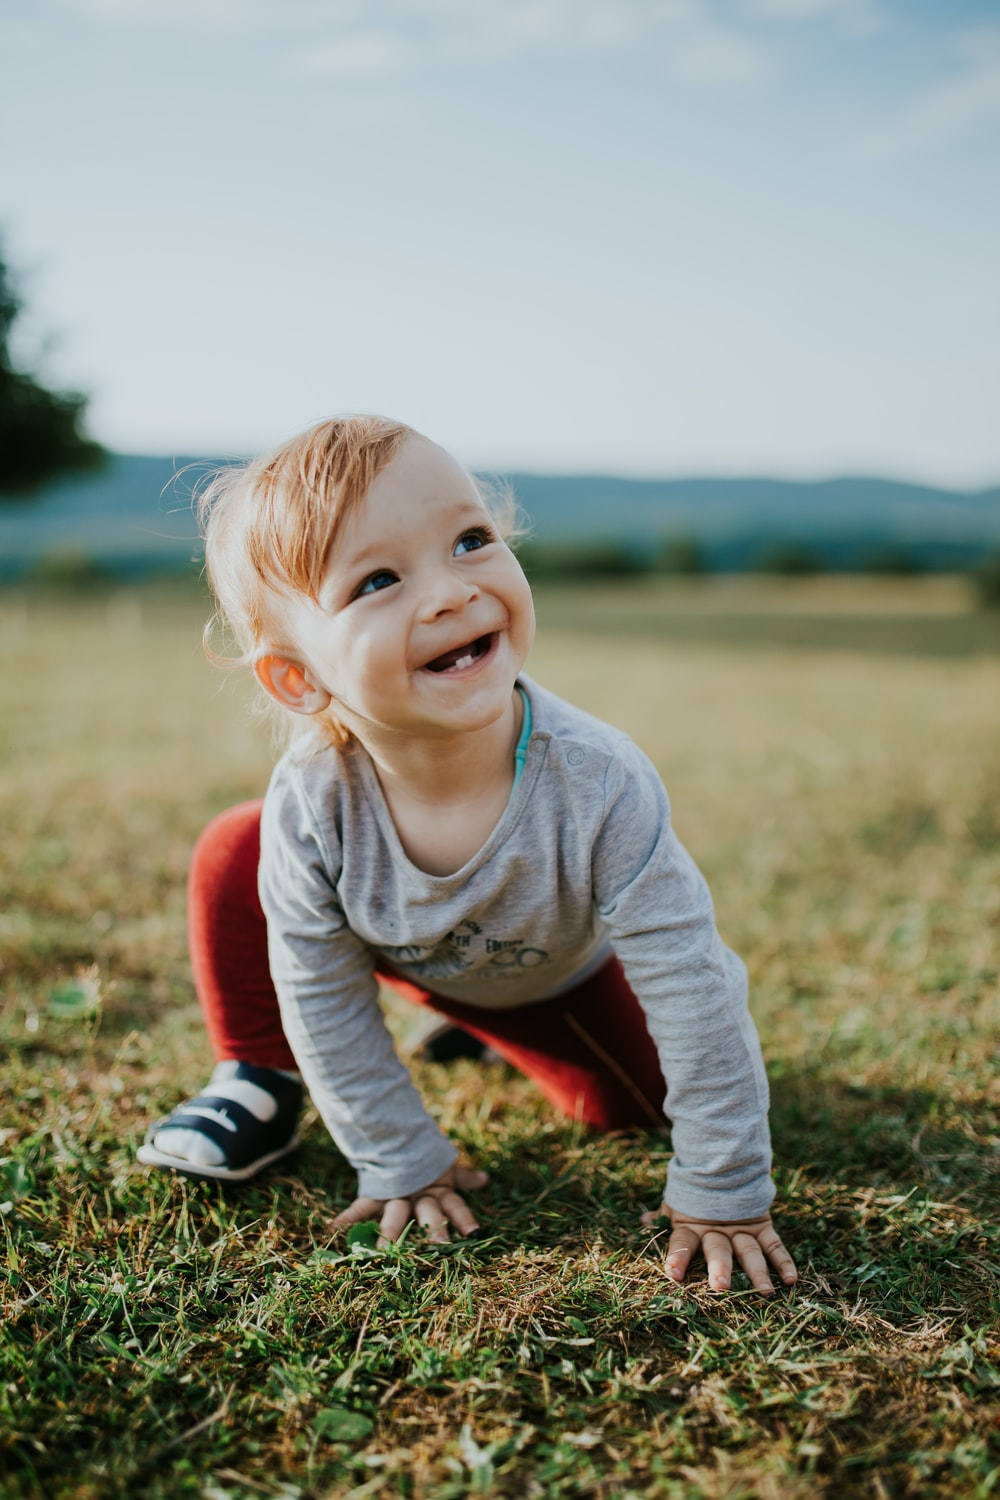 selective focus photo of baby crawling on grass